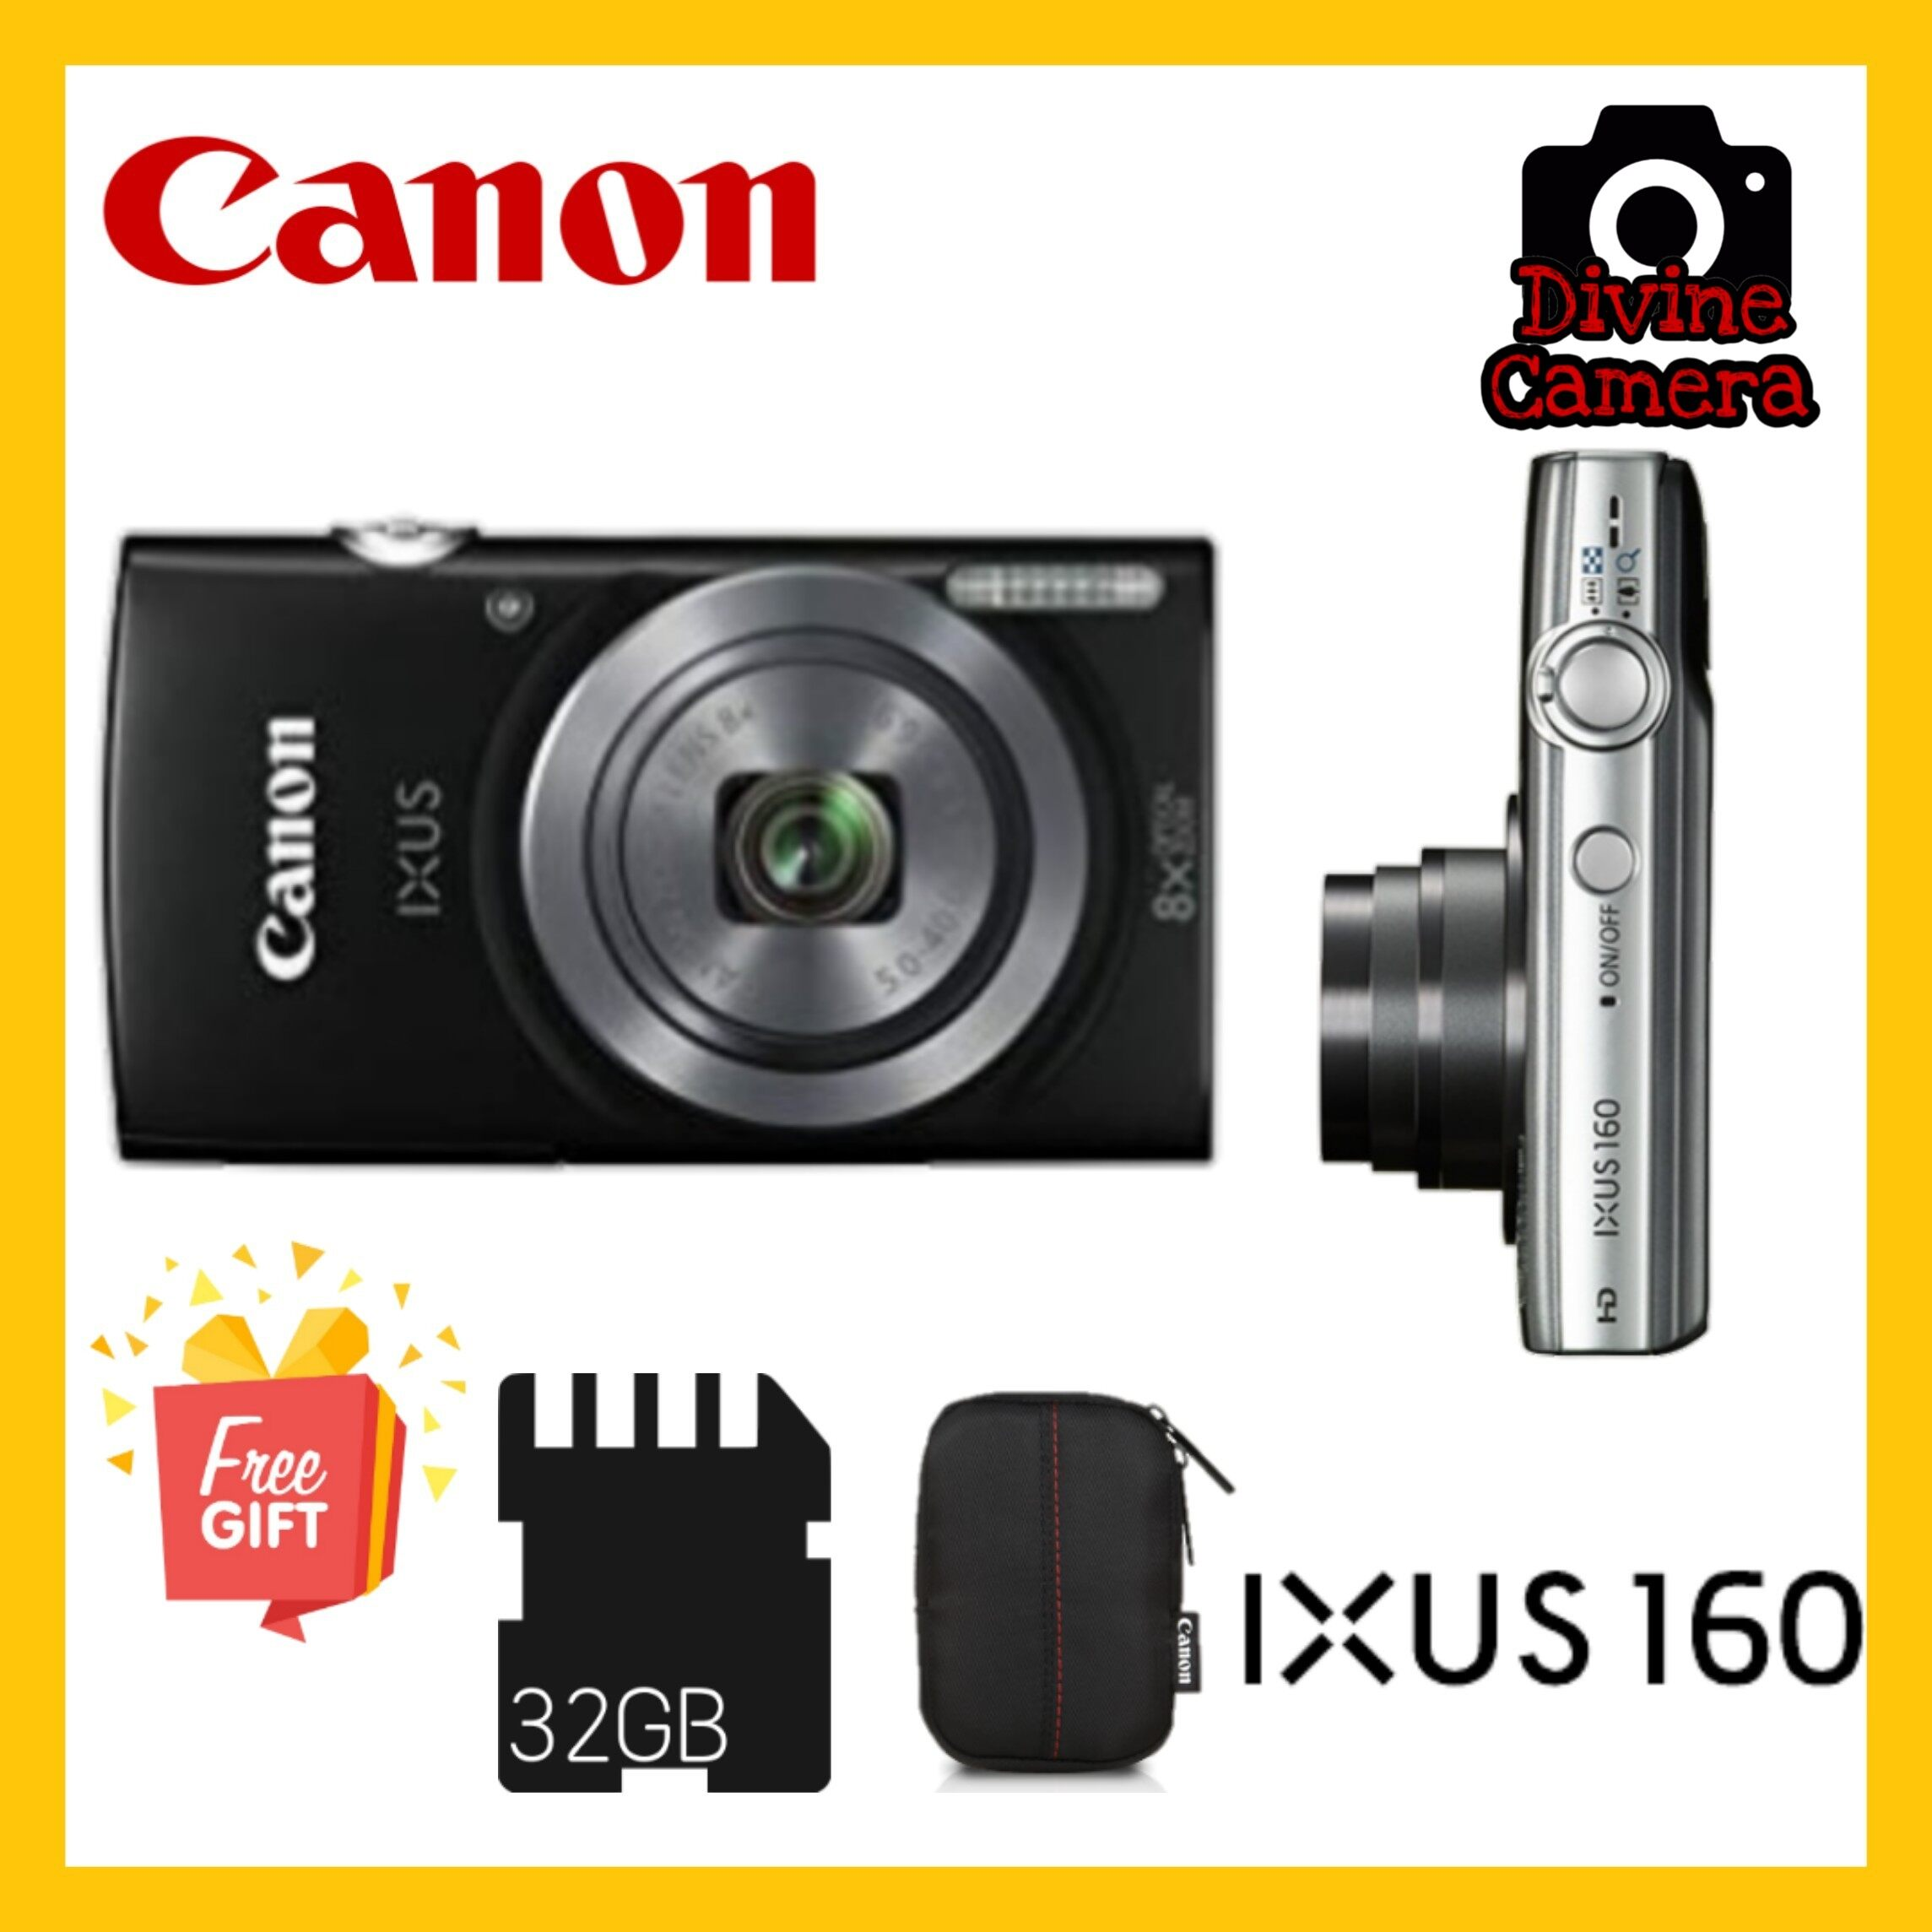 Canon IXUS 160 Digital Compact Camera Point and Shoot